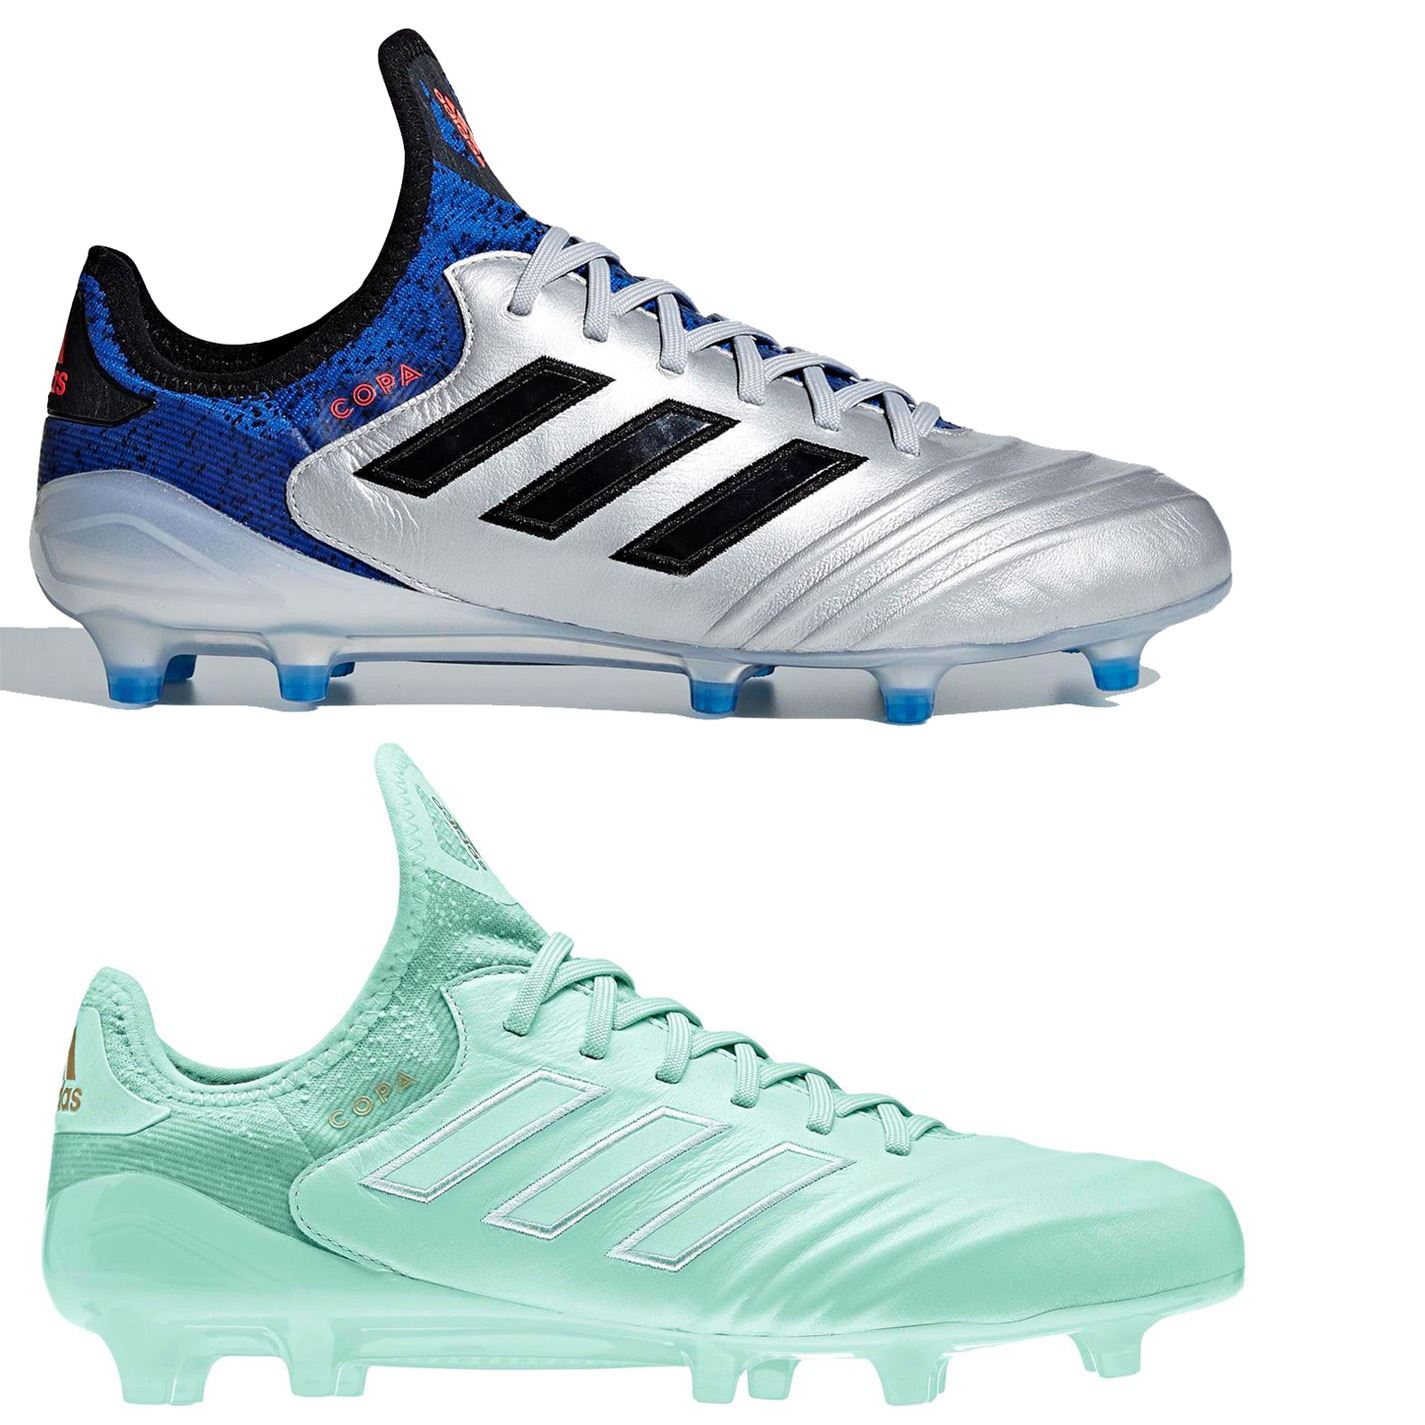 c0f162d3 ... adidas Copa 18.1 FG Firm Ground Football Boots Mens Soccer Shoes Cleats  ...